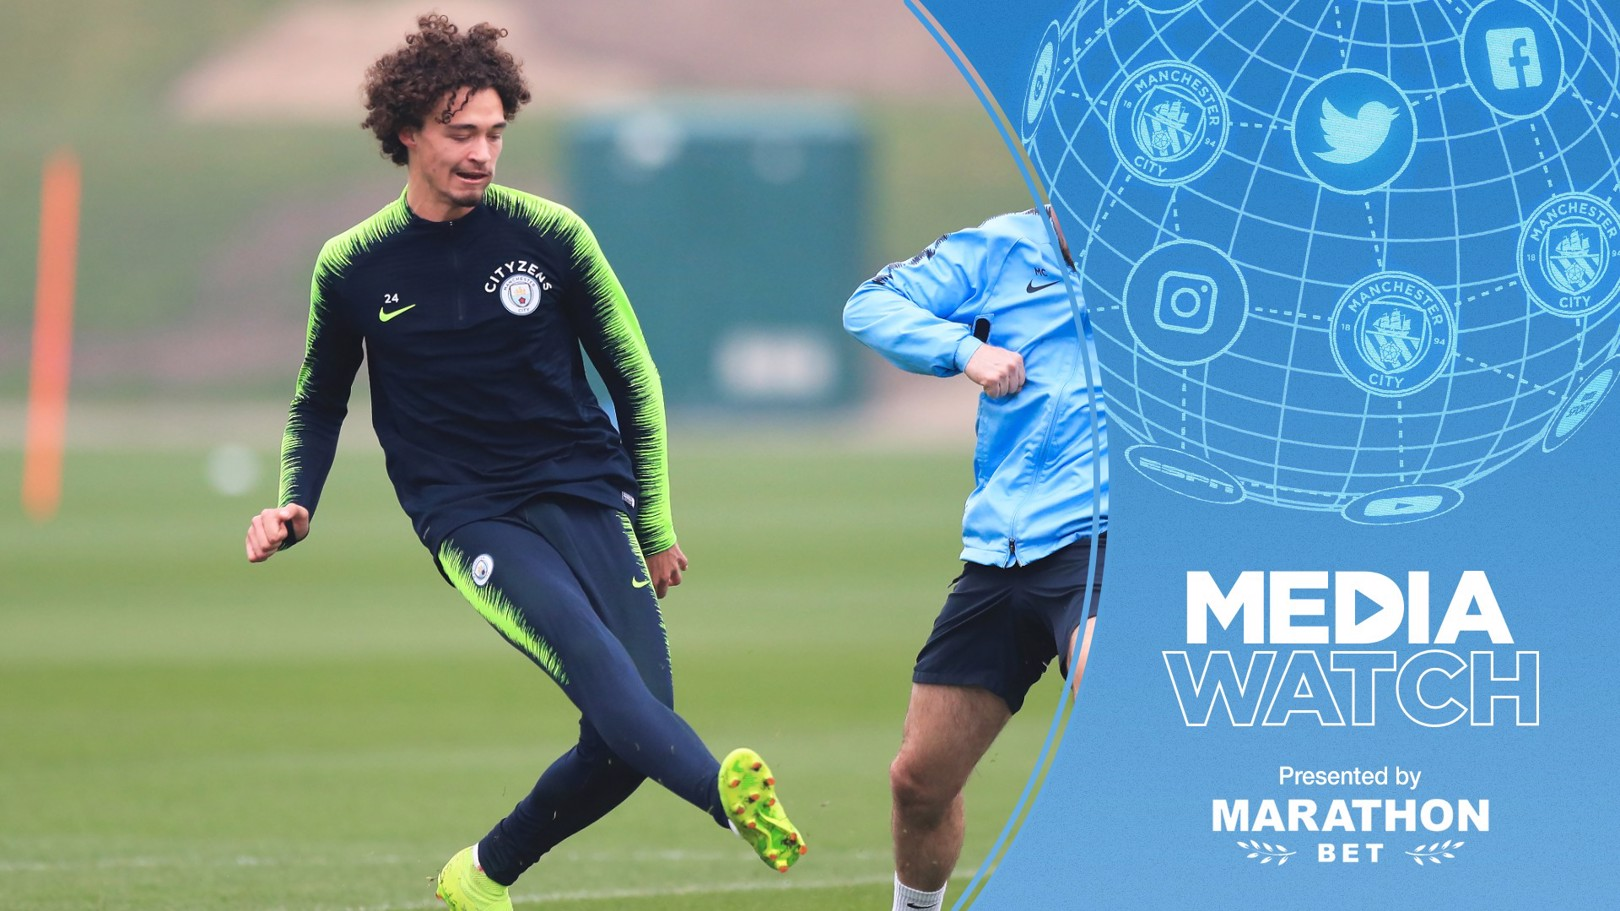 ANALYSIS: Philippe Sandler has been praised in the media.